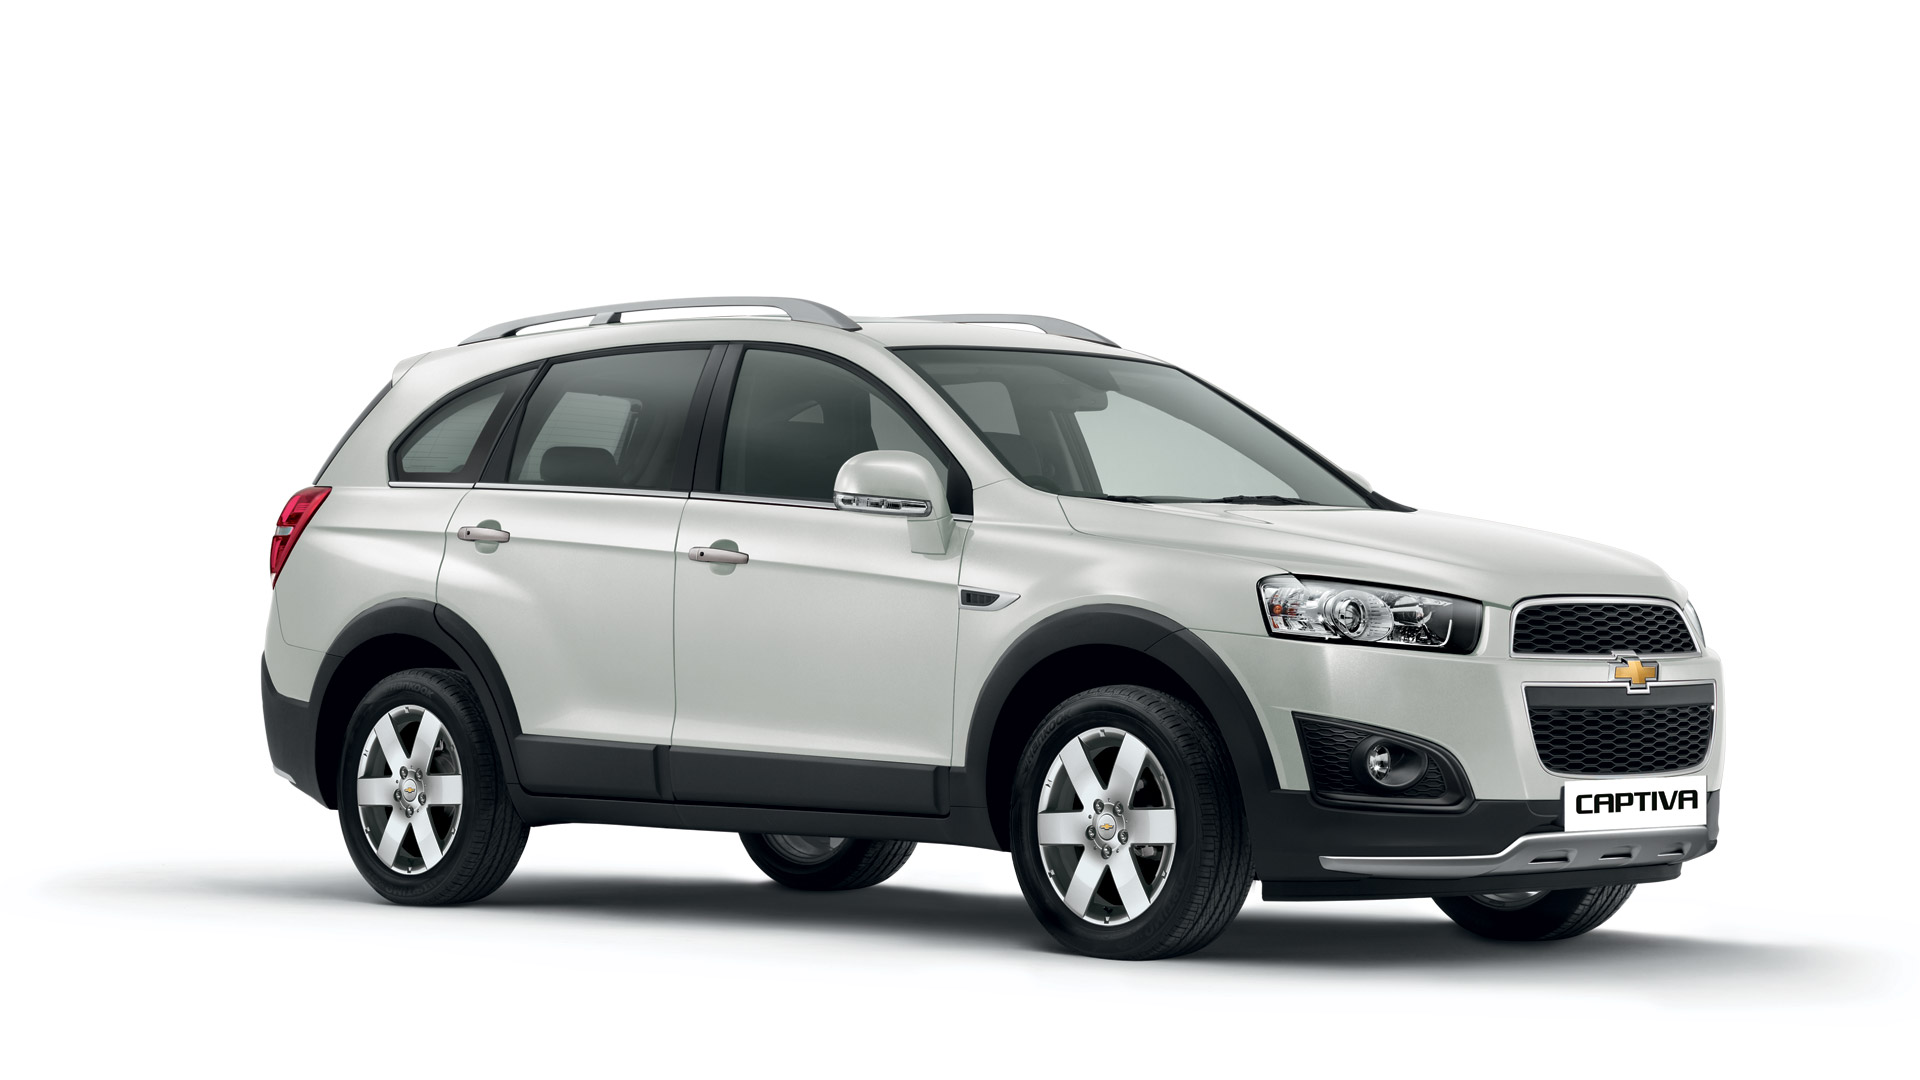 Cars chevrolet captiva #3